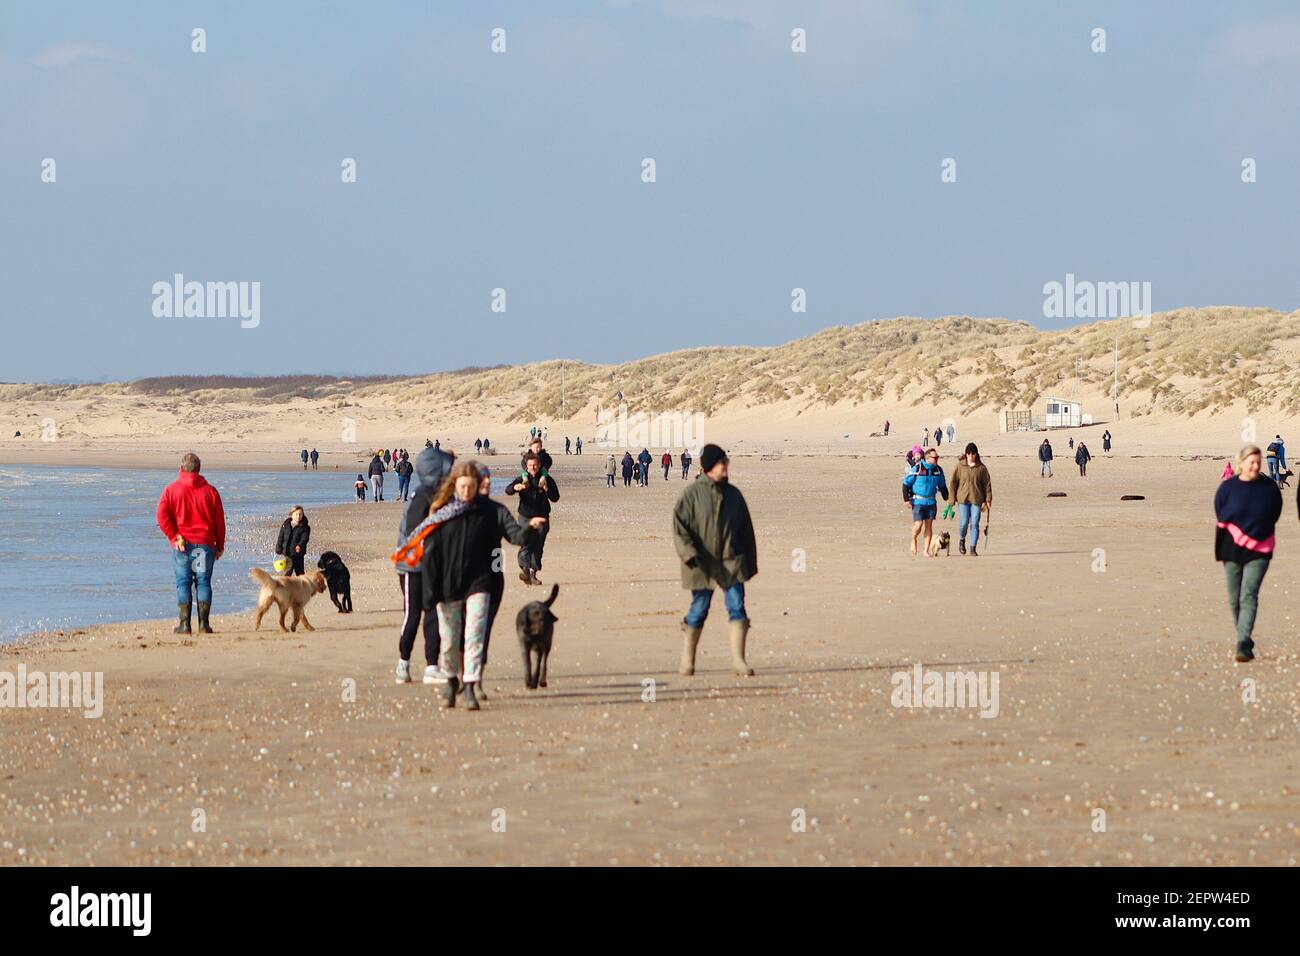 Camber, East Sussex, UK. 28 Feb, 2021. UK Weather: Warm winter sunshine with breezy winds here at Camber Sands in East Sussex. Lots of families and people enjoying the mild winter weather walking along the sandy beach. Large group of people enjoying the fresh air on the golden sands. Photo Credit: Paul Lawrenson/Alamy Live News Stock Photo